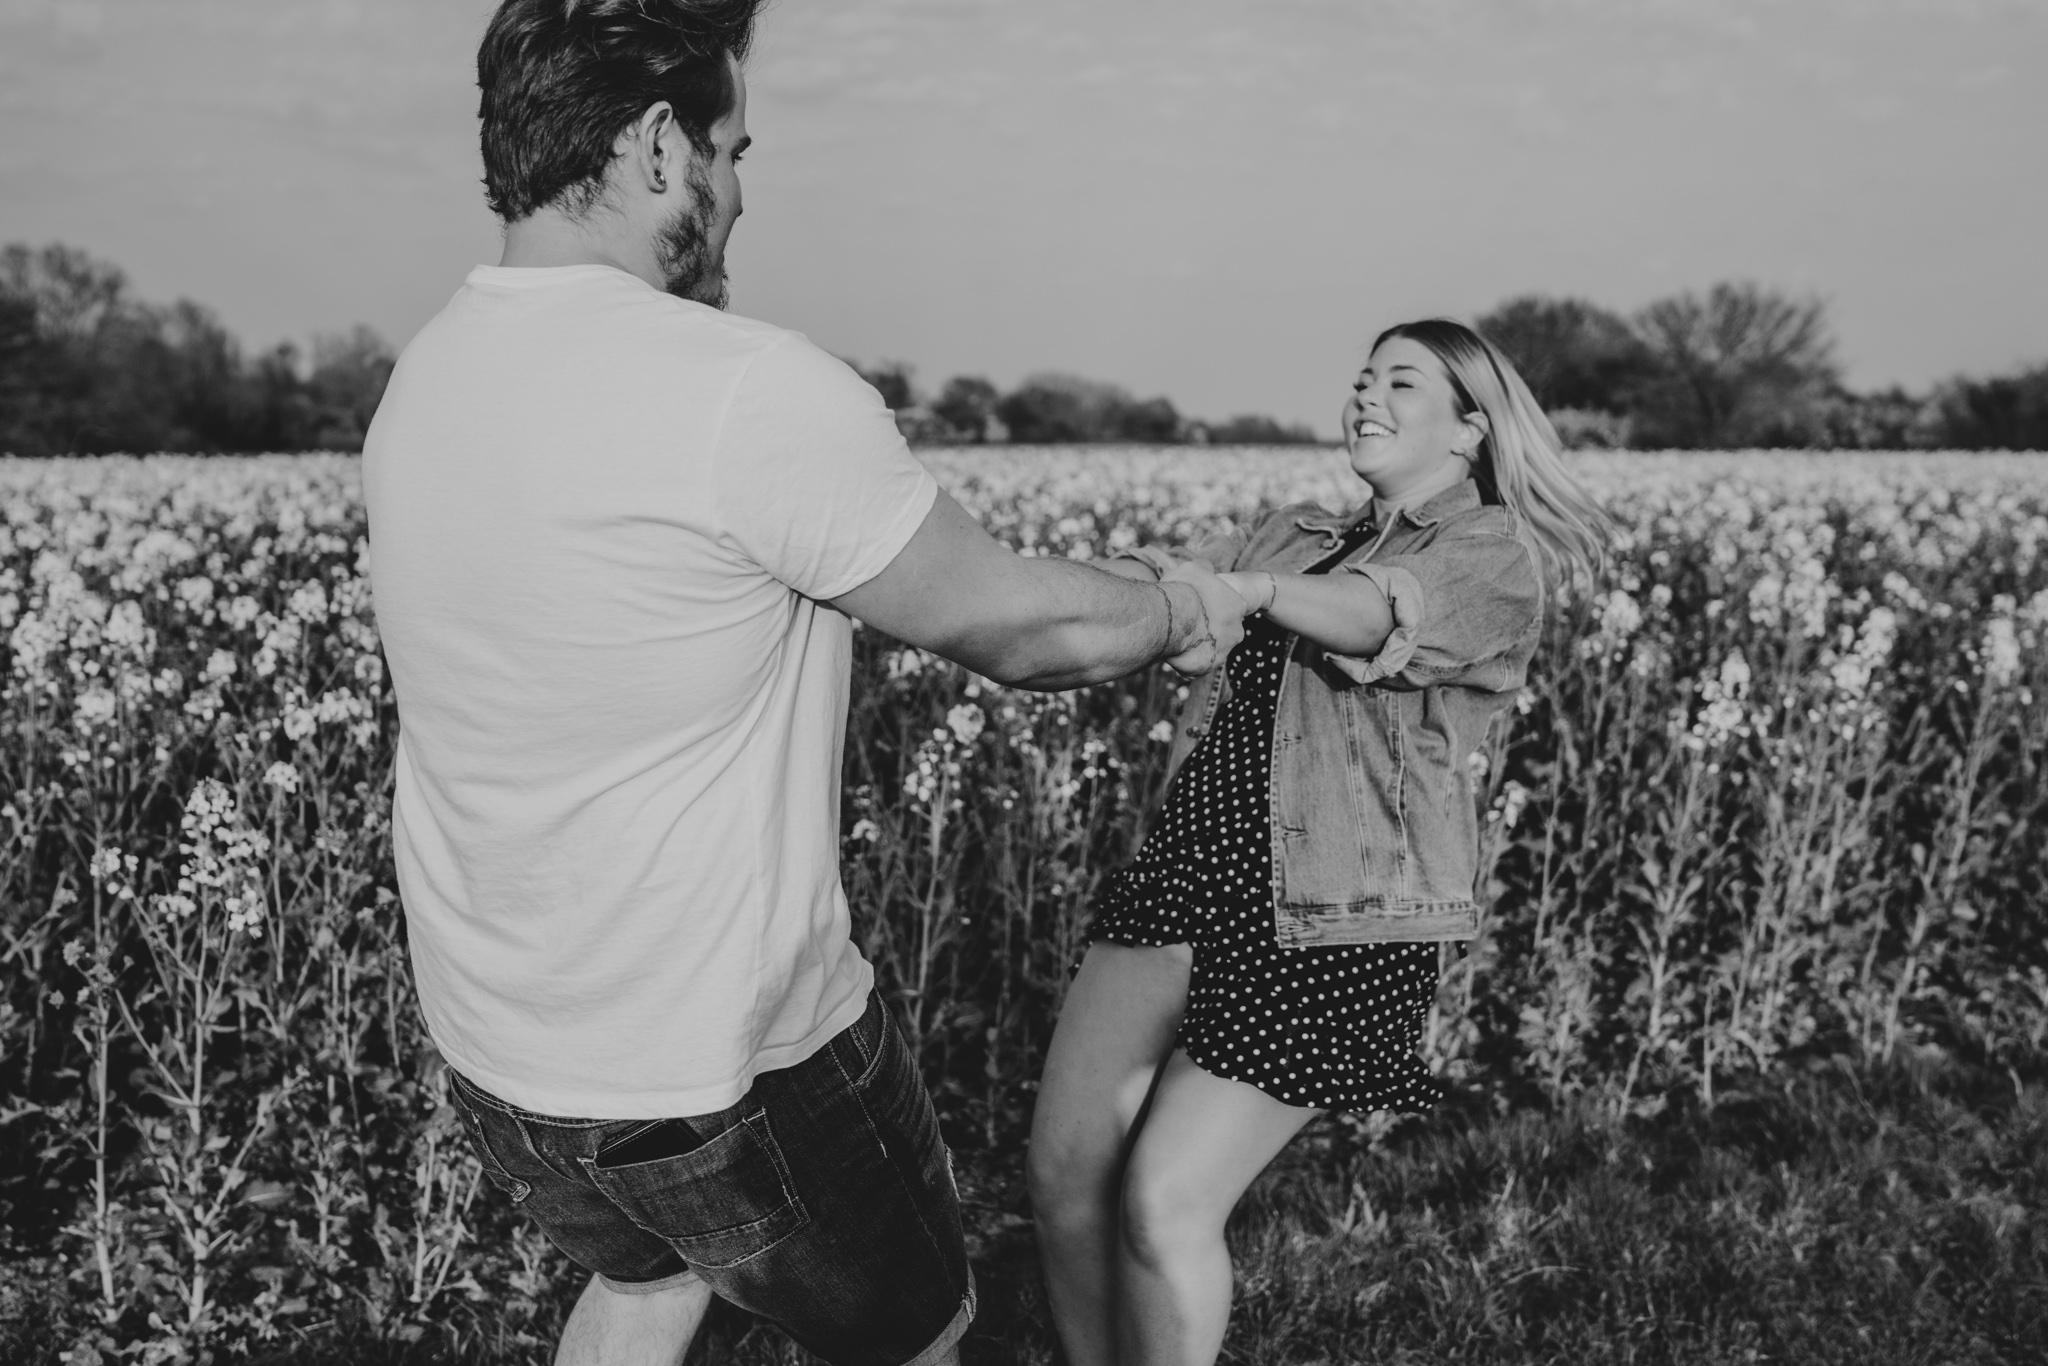 chloe-dan-pre-wedding-engagement-session-countryside-grace-elizabeth-colchester-essex-alternative-wedding-lifestyle-photographer-suffolk-norfolk-devon (35 of 50).jpg